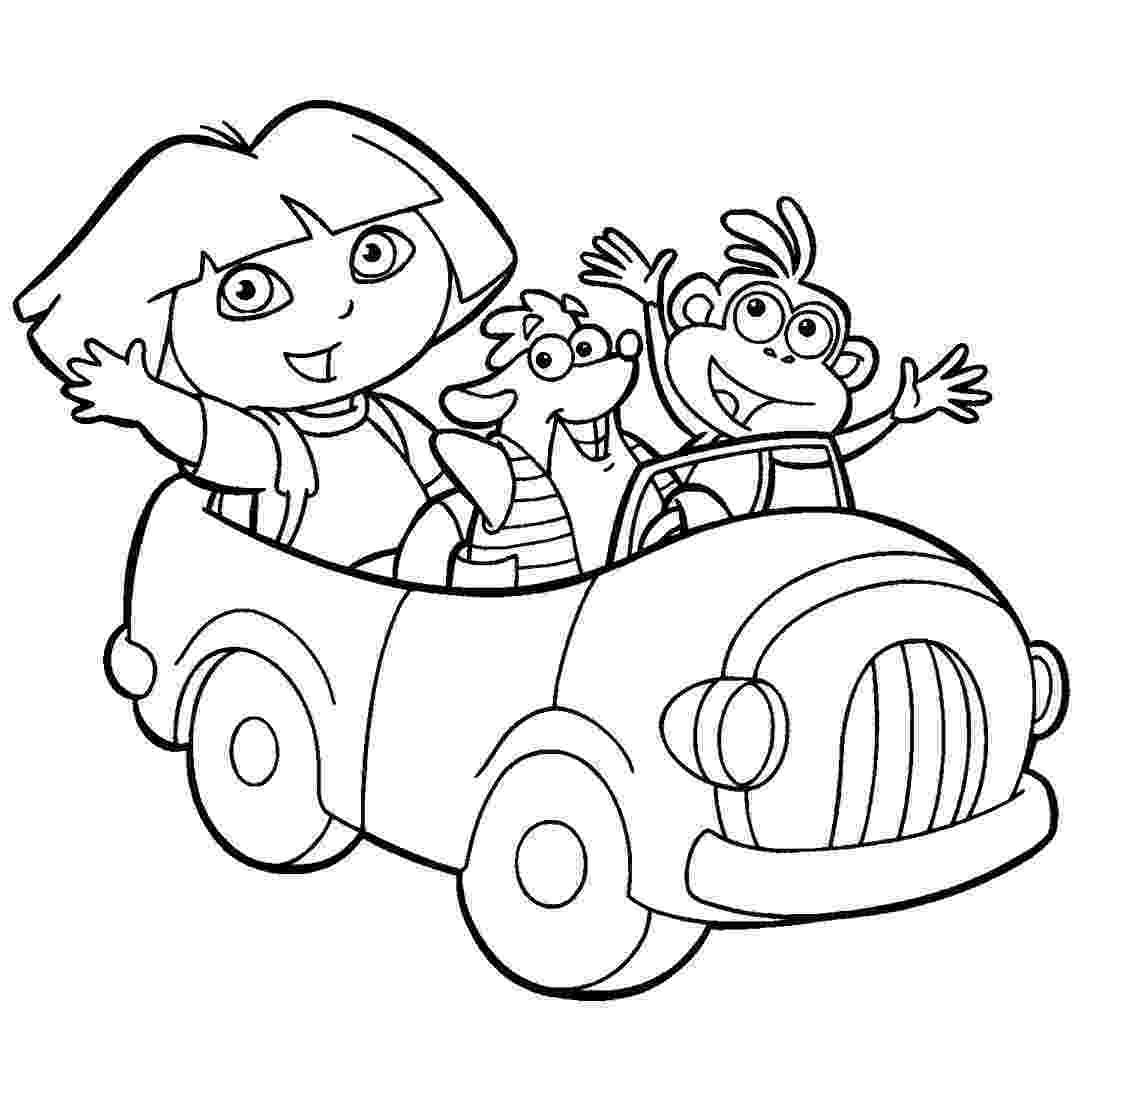 printable coloring dora dora the explorer coloring pages minister coloring coloring dora printable